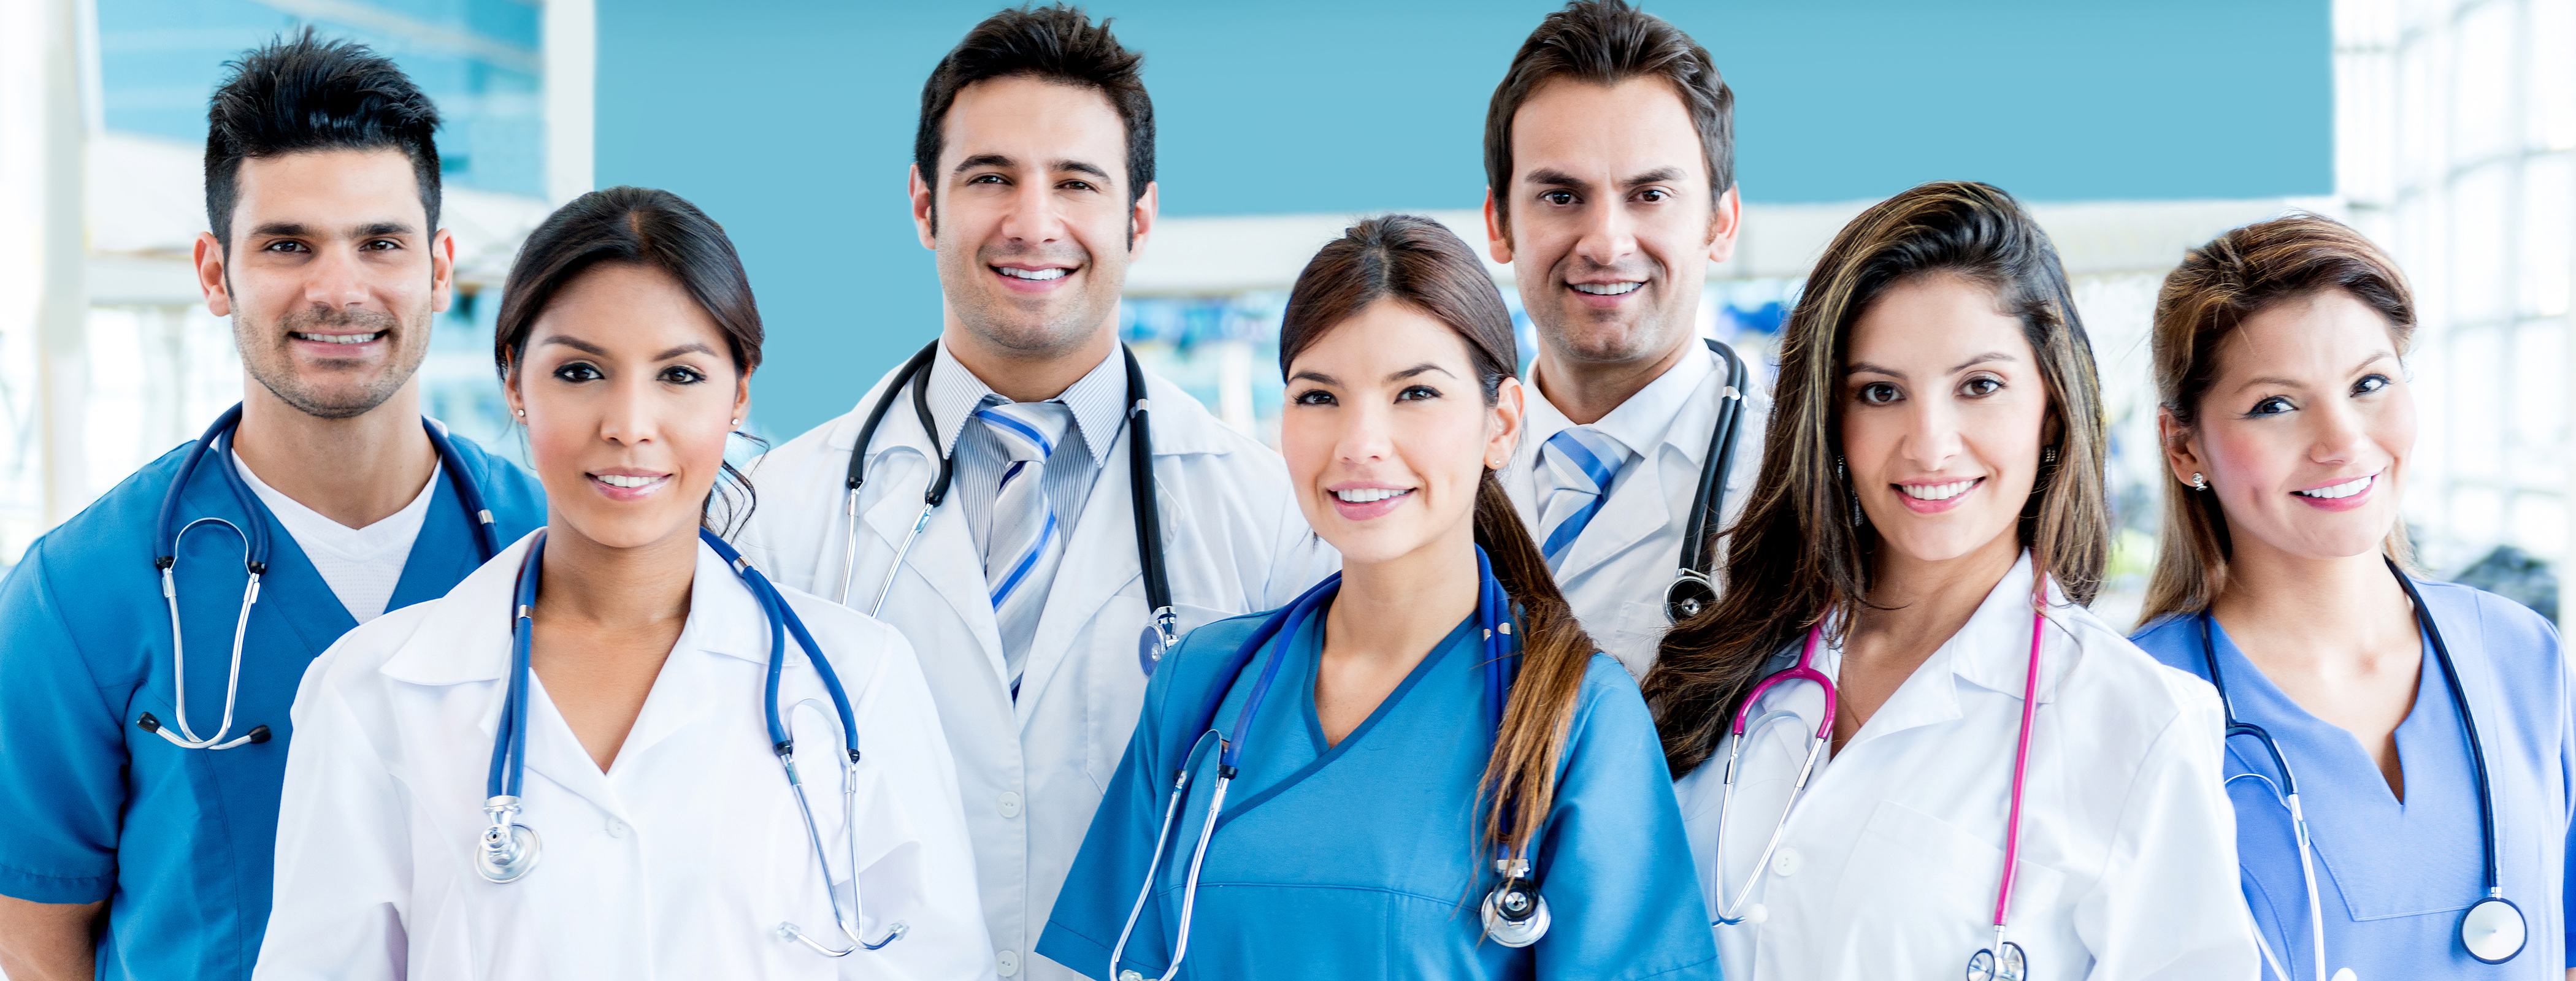 mbbs abroad germany option - HD 4200×1600